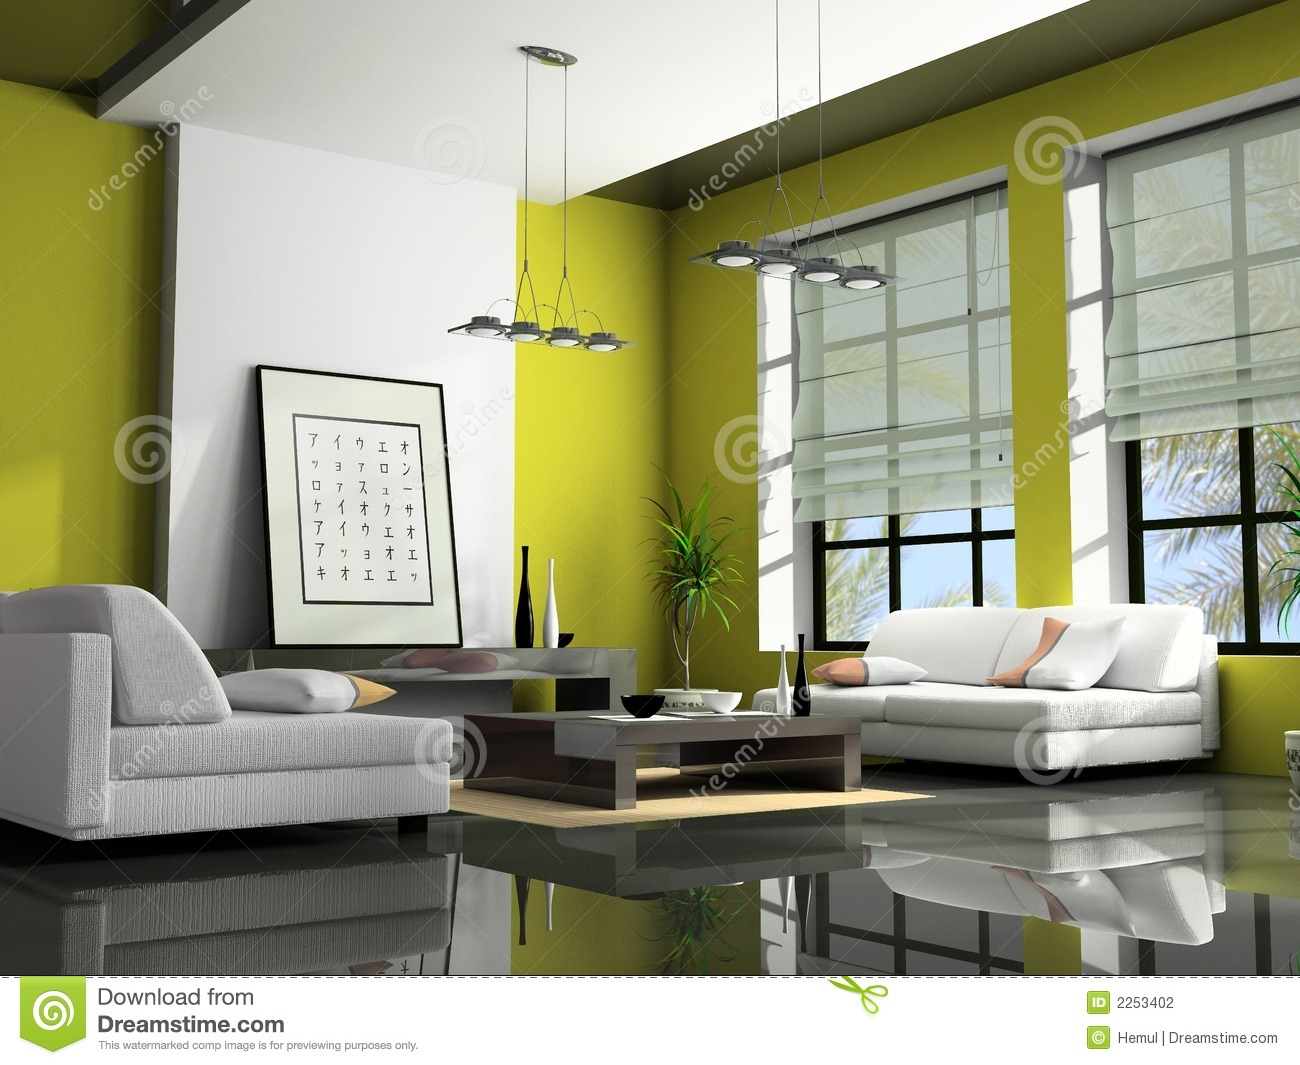 Home Interior 3D Rendering Stock Photo. Image Of